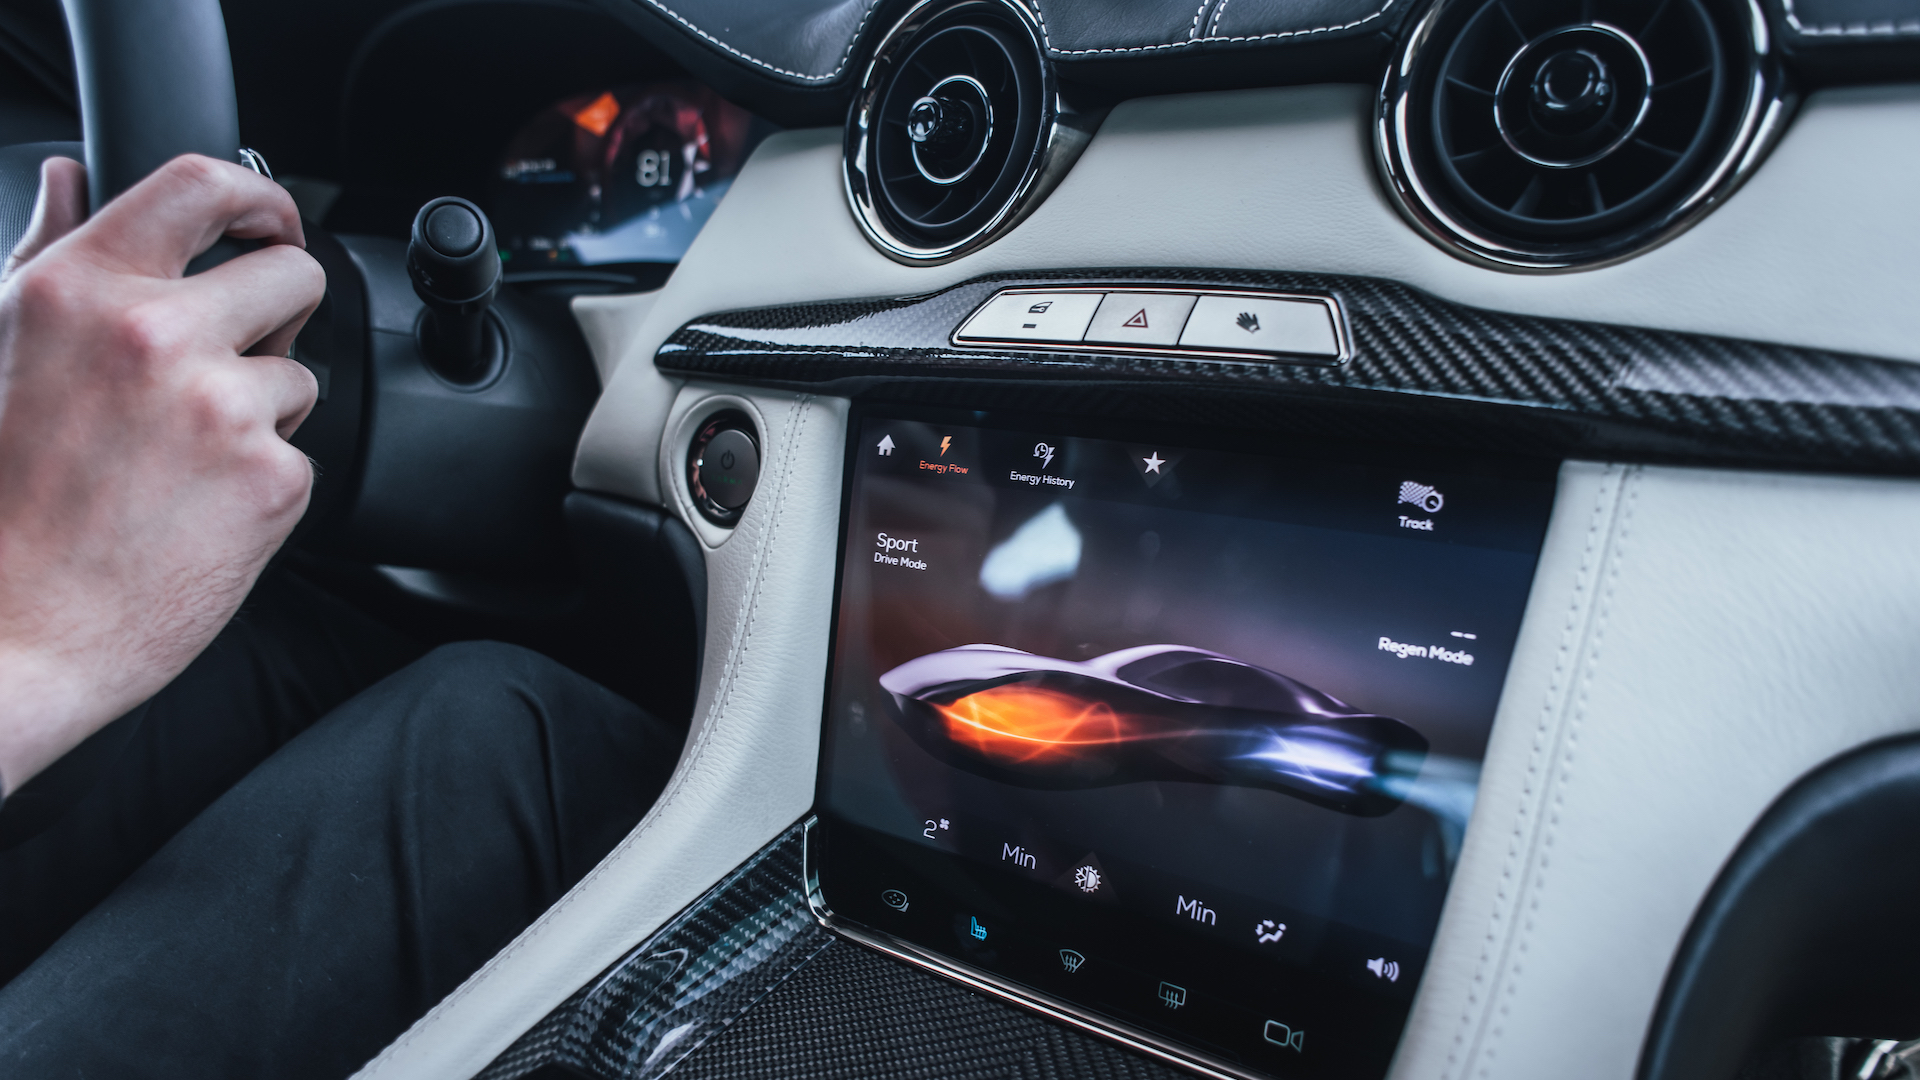 Kanzi UI software used in the Revero GT